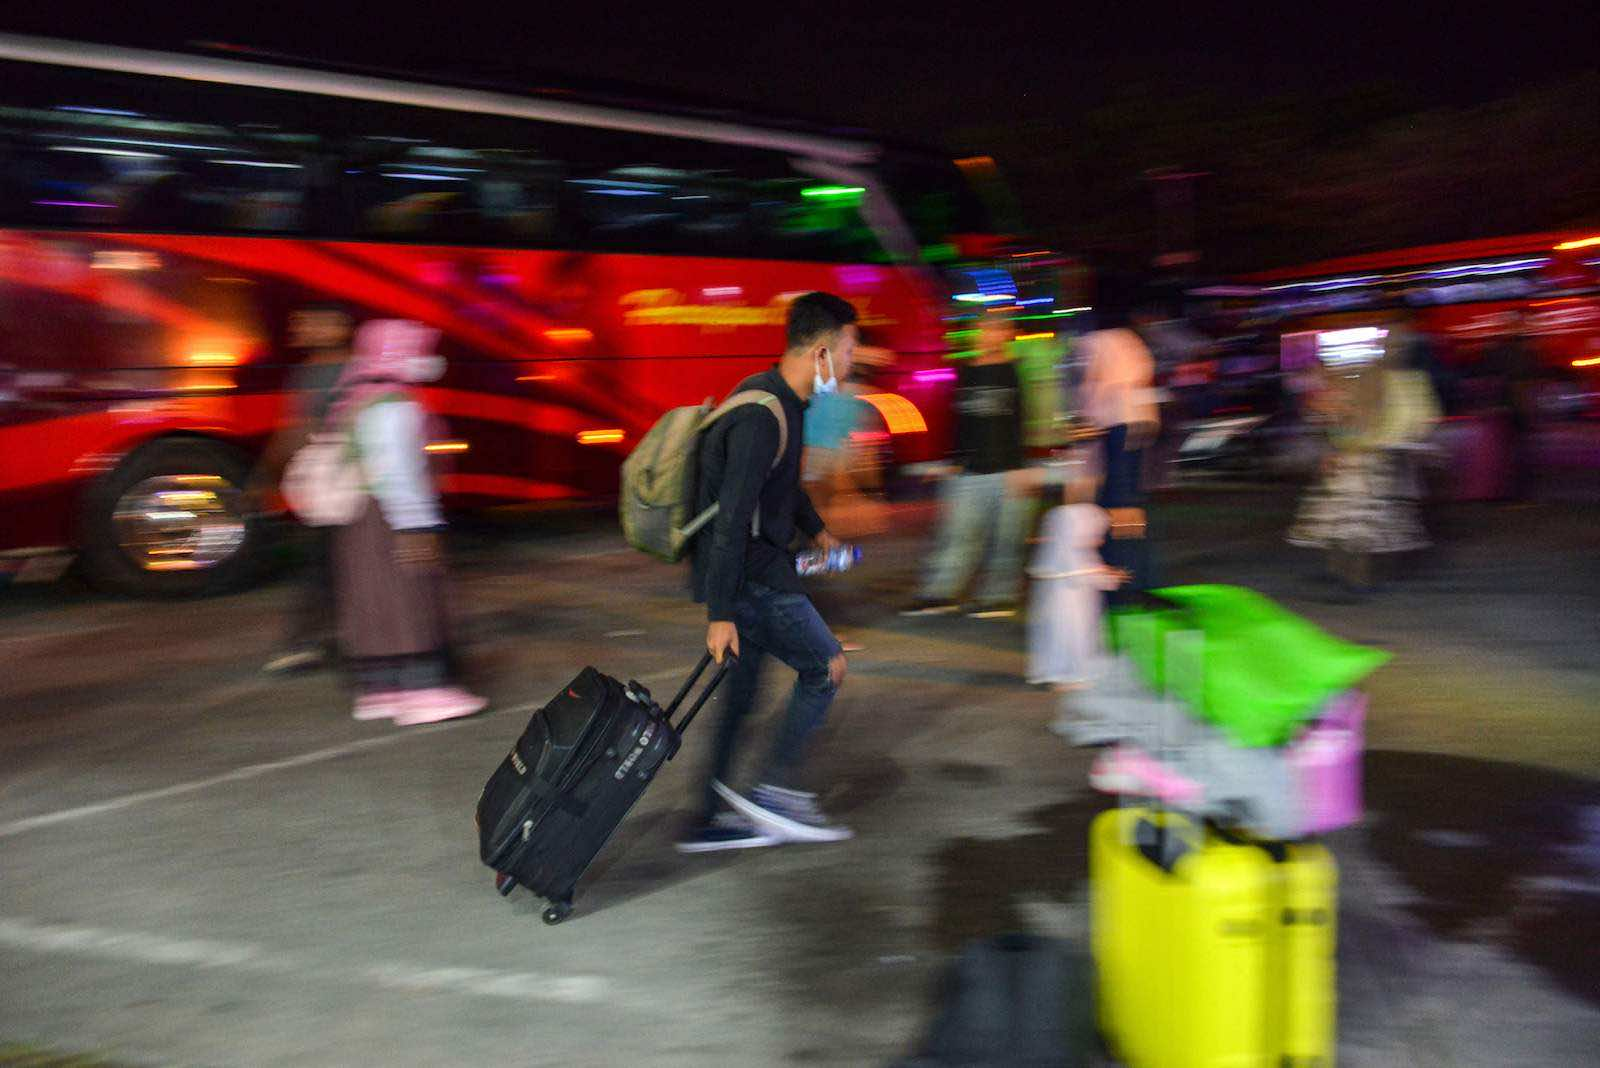 Passengers gather at a bus station during the homecoming, or mudik, ahead of the Eid al-Fitr celebrations in Banda Aceh, 3 May 2021 (Chaideer Mahyuddin/AFP via Getty Images)